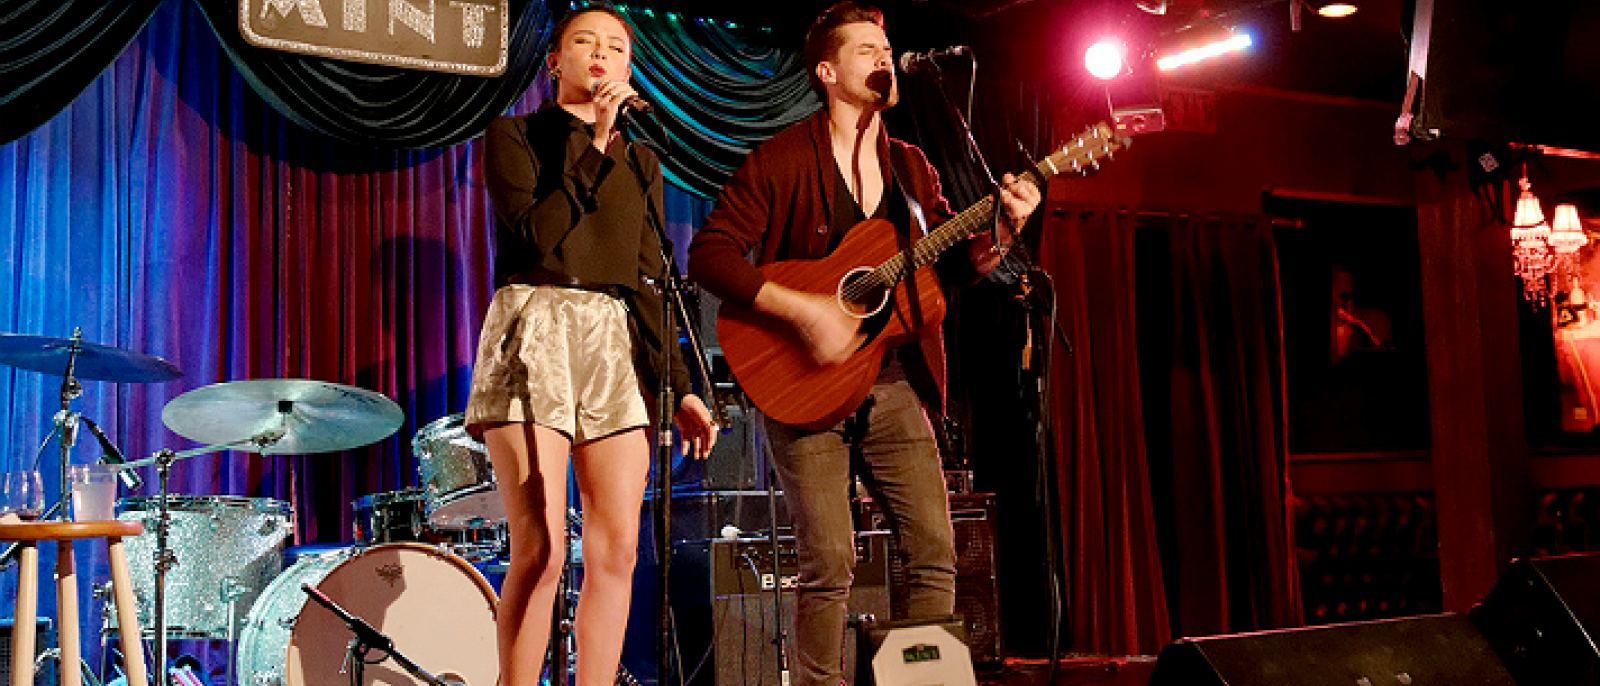 Malese Jow and Austin Charles at The Mint | Photo courtesy of Justin Higuchi, Flickr